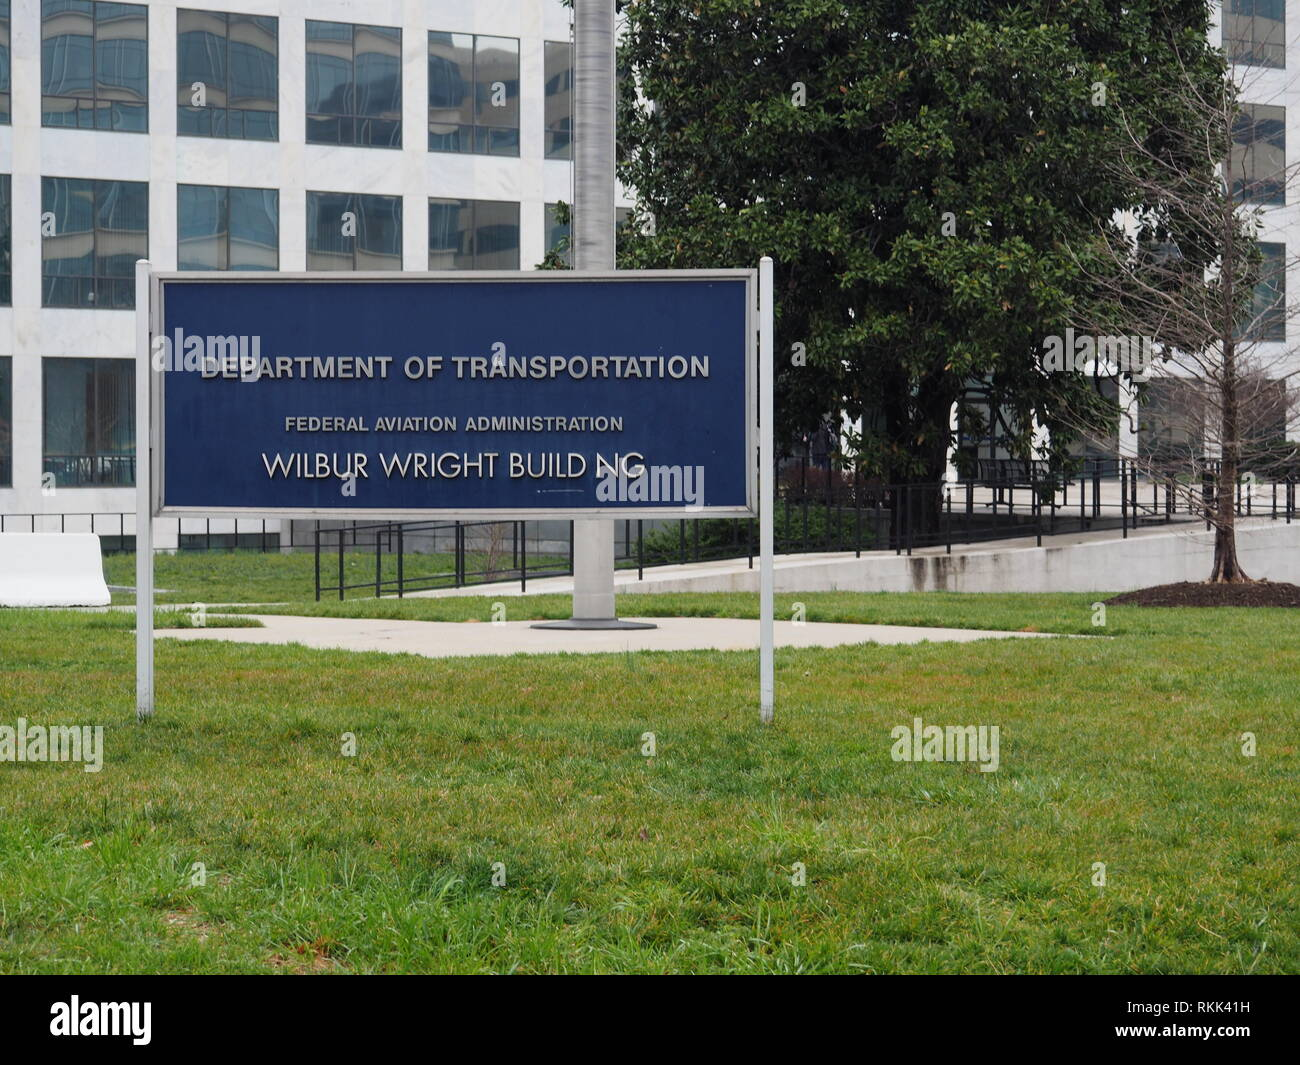 Department of Transportation sign - Washington Dc - USA - Stock Image